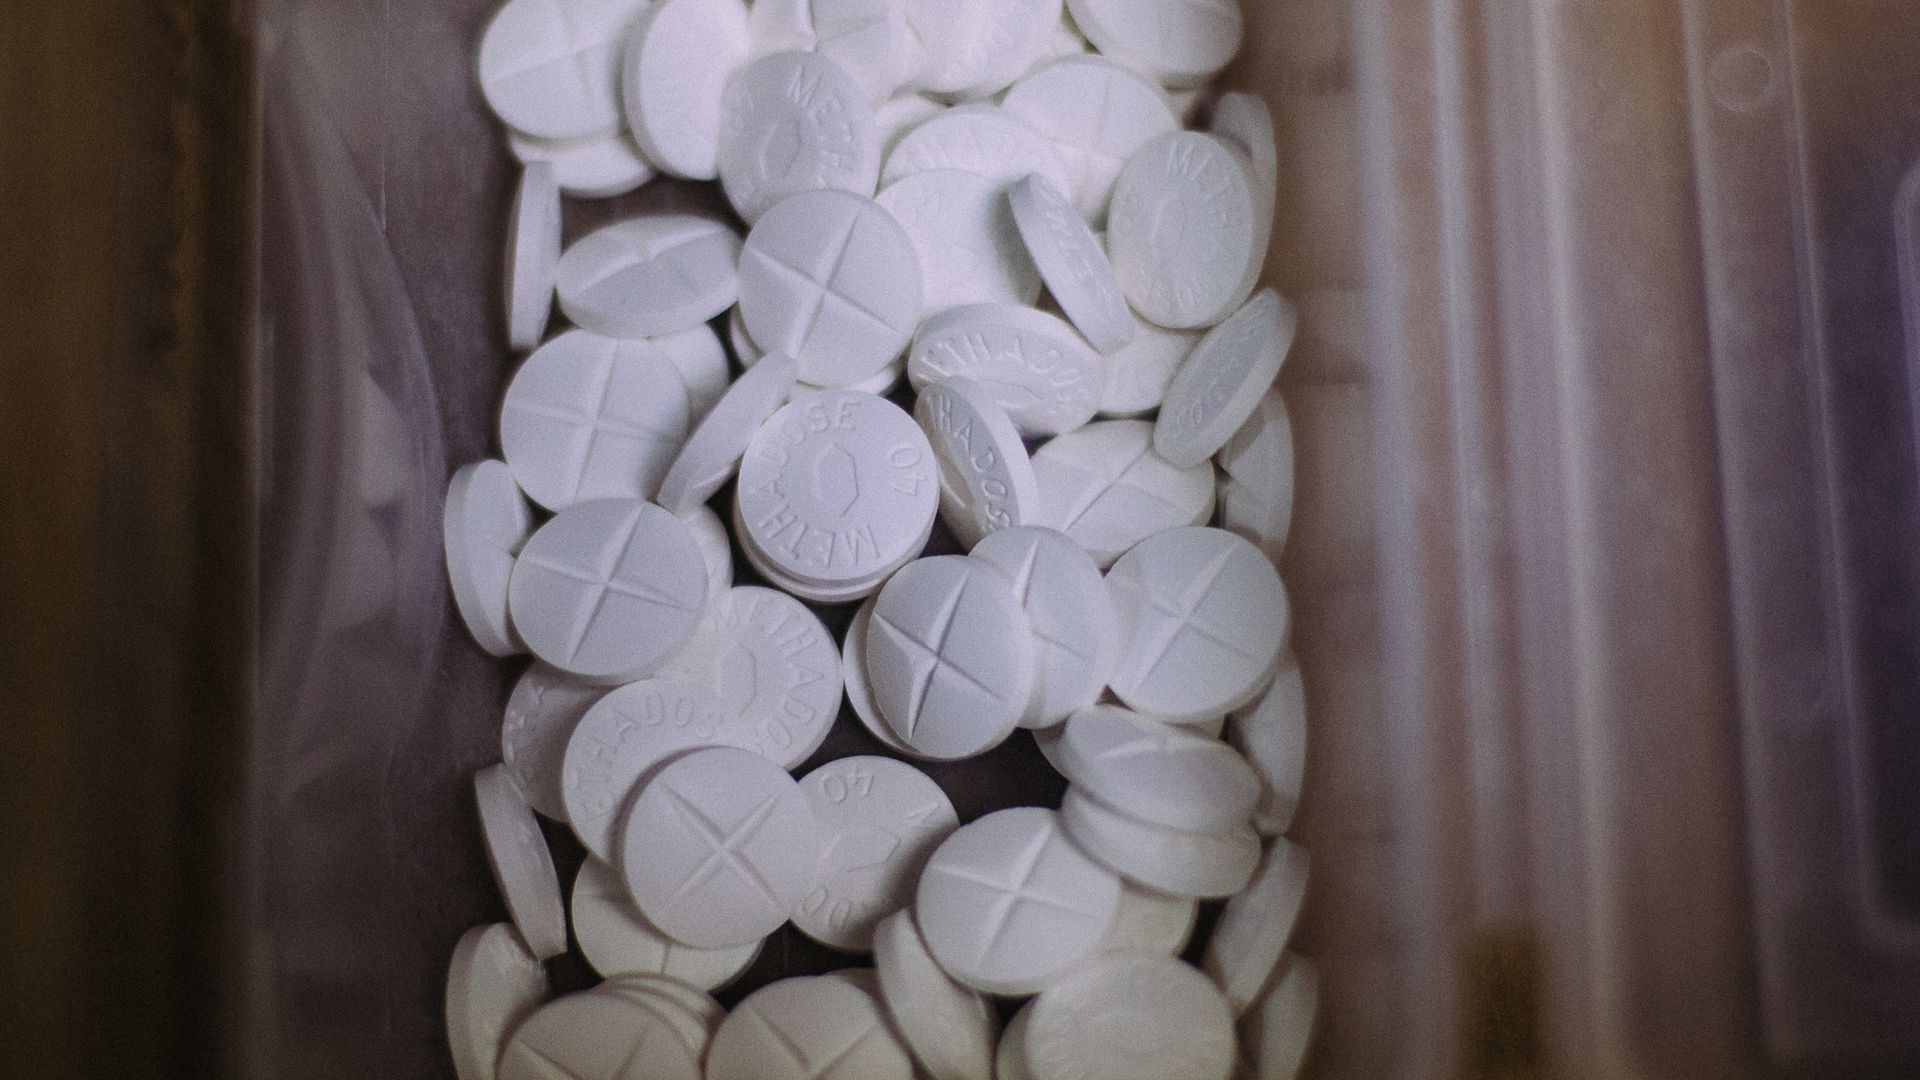 Methadose tablets, the concentrated form of Methadone.